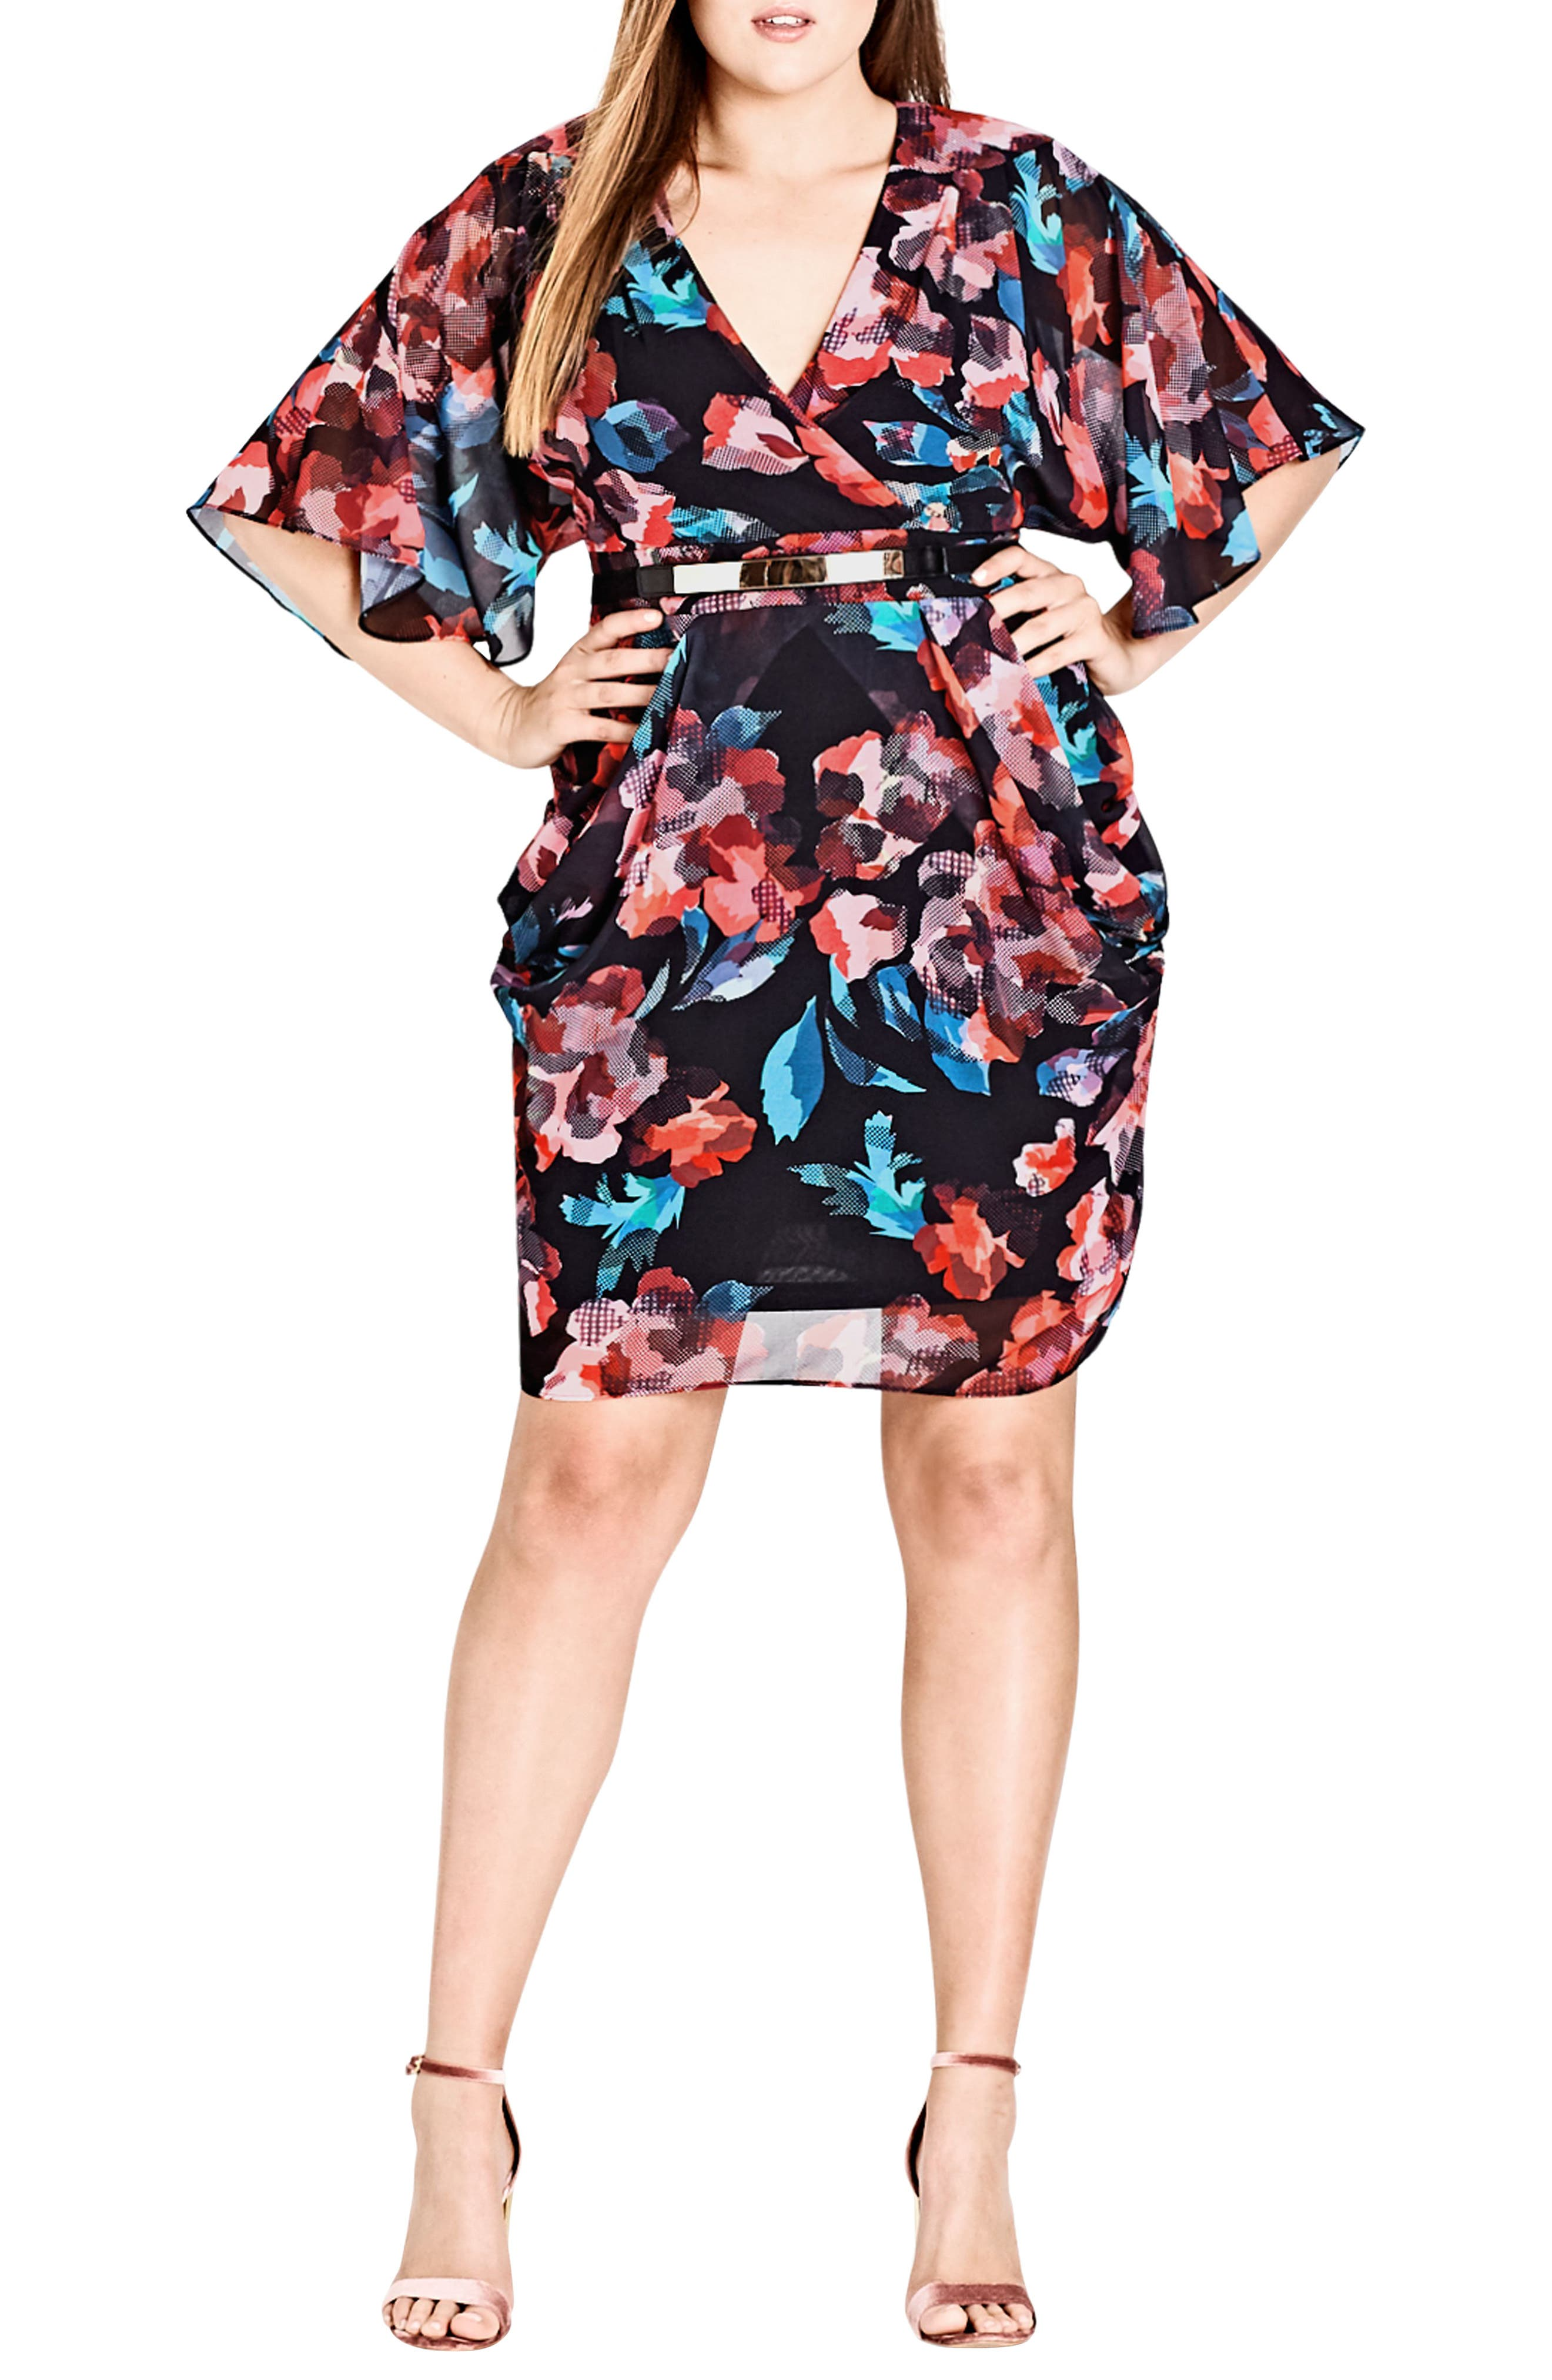 Alternate Image 1 Selected - City Chic Geo Print Faux Wrap Dress (Plus Size)